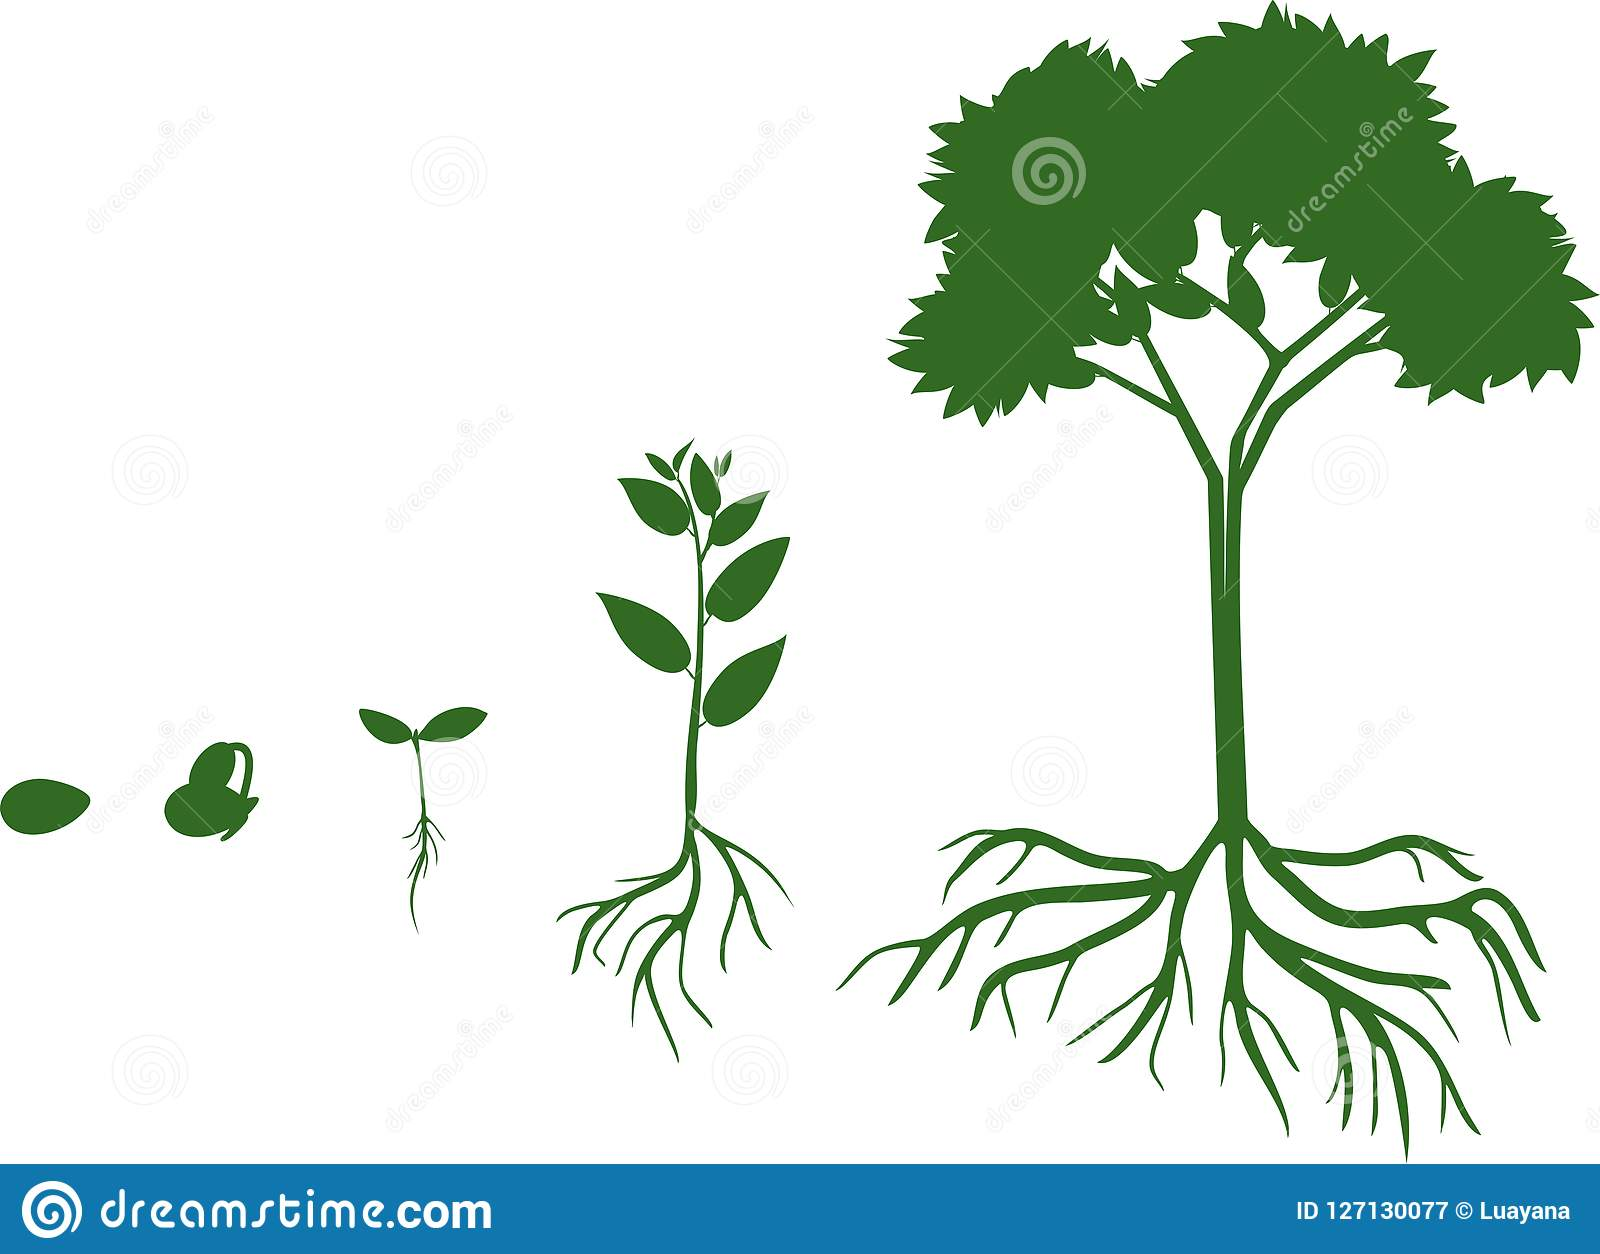 Plant Growth Stage From Seed To Adult Tree With Root System